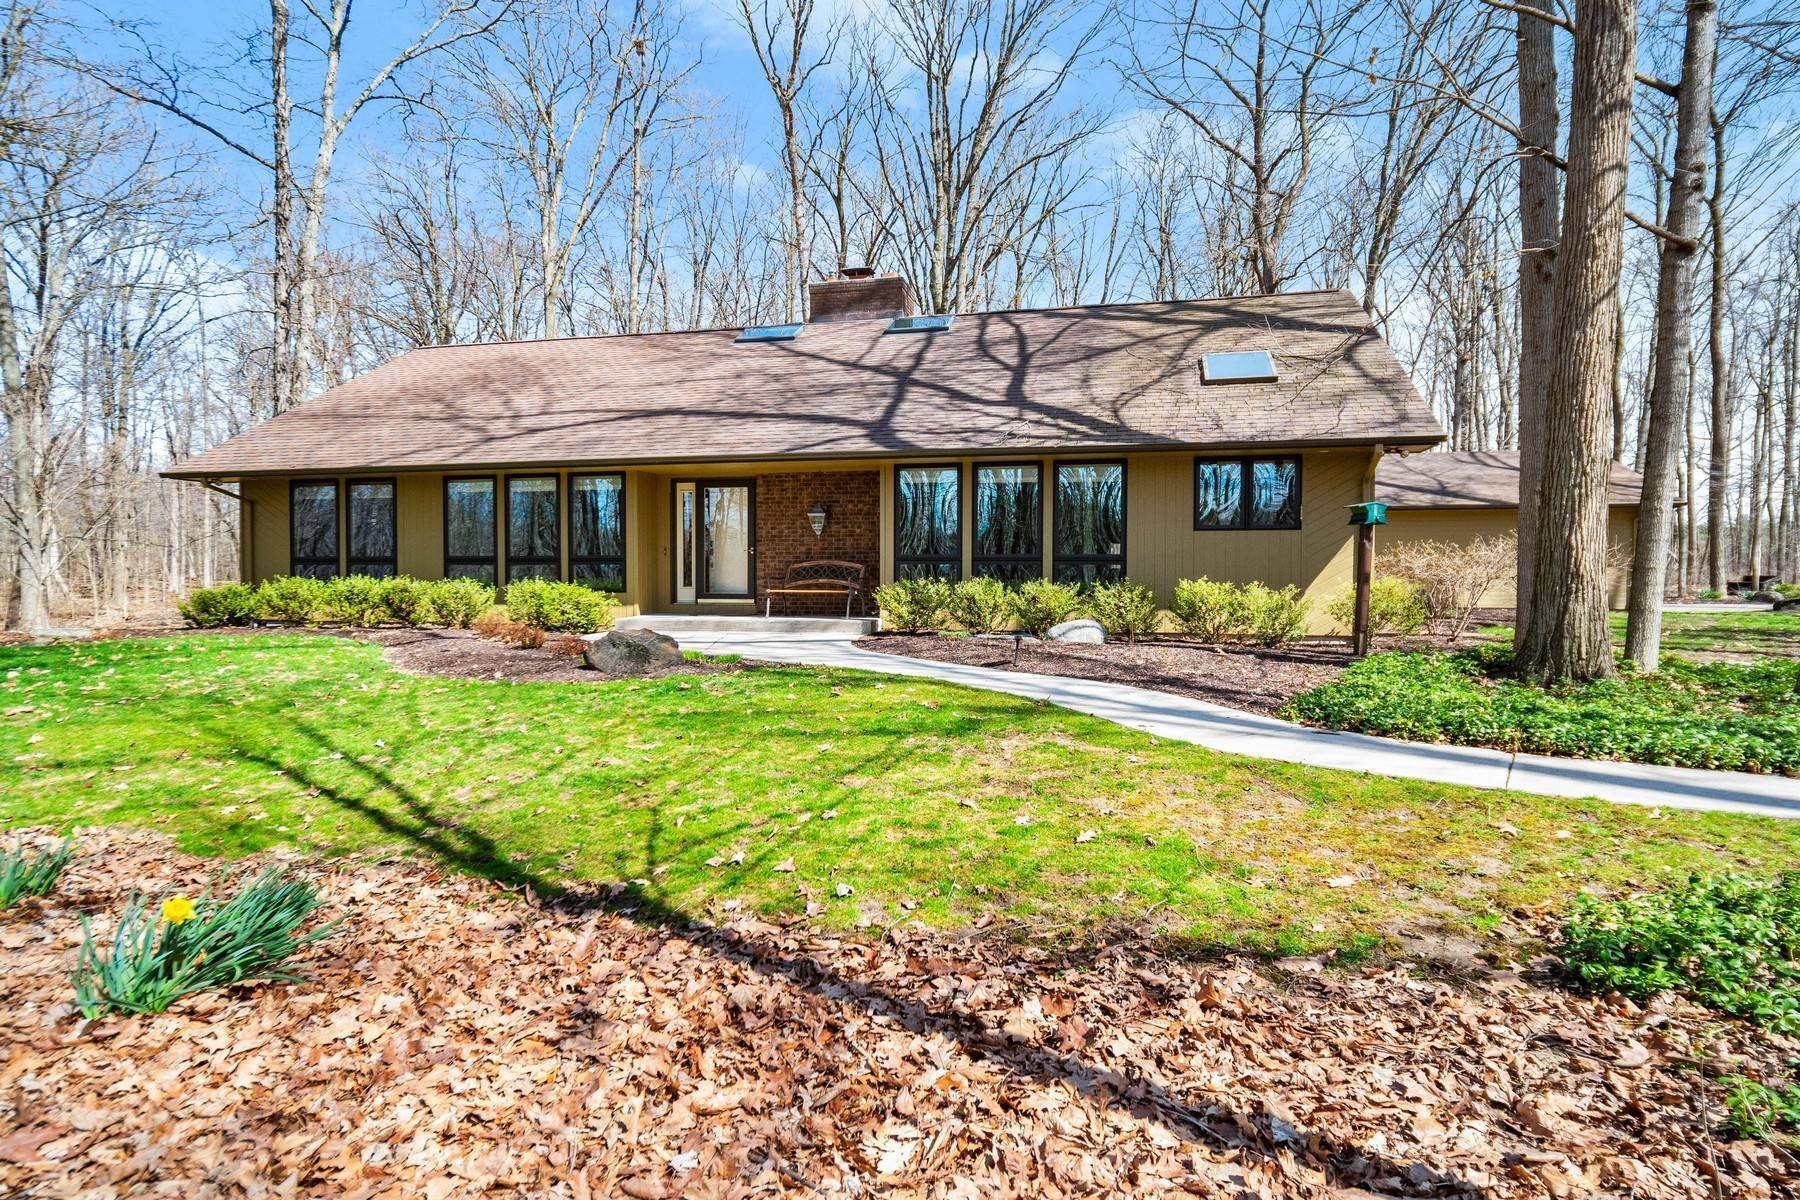 Single Family Homes for Sale at Complete Privacy on 5+ Acres 3907 Eggeman Road Fort Wayne, Indiana 46814 United States